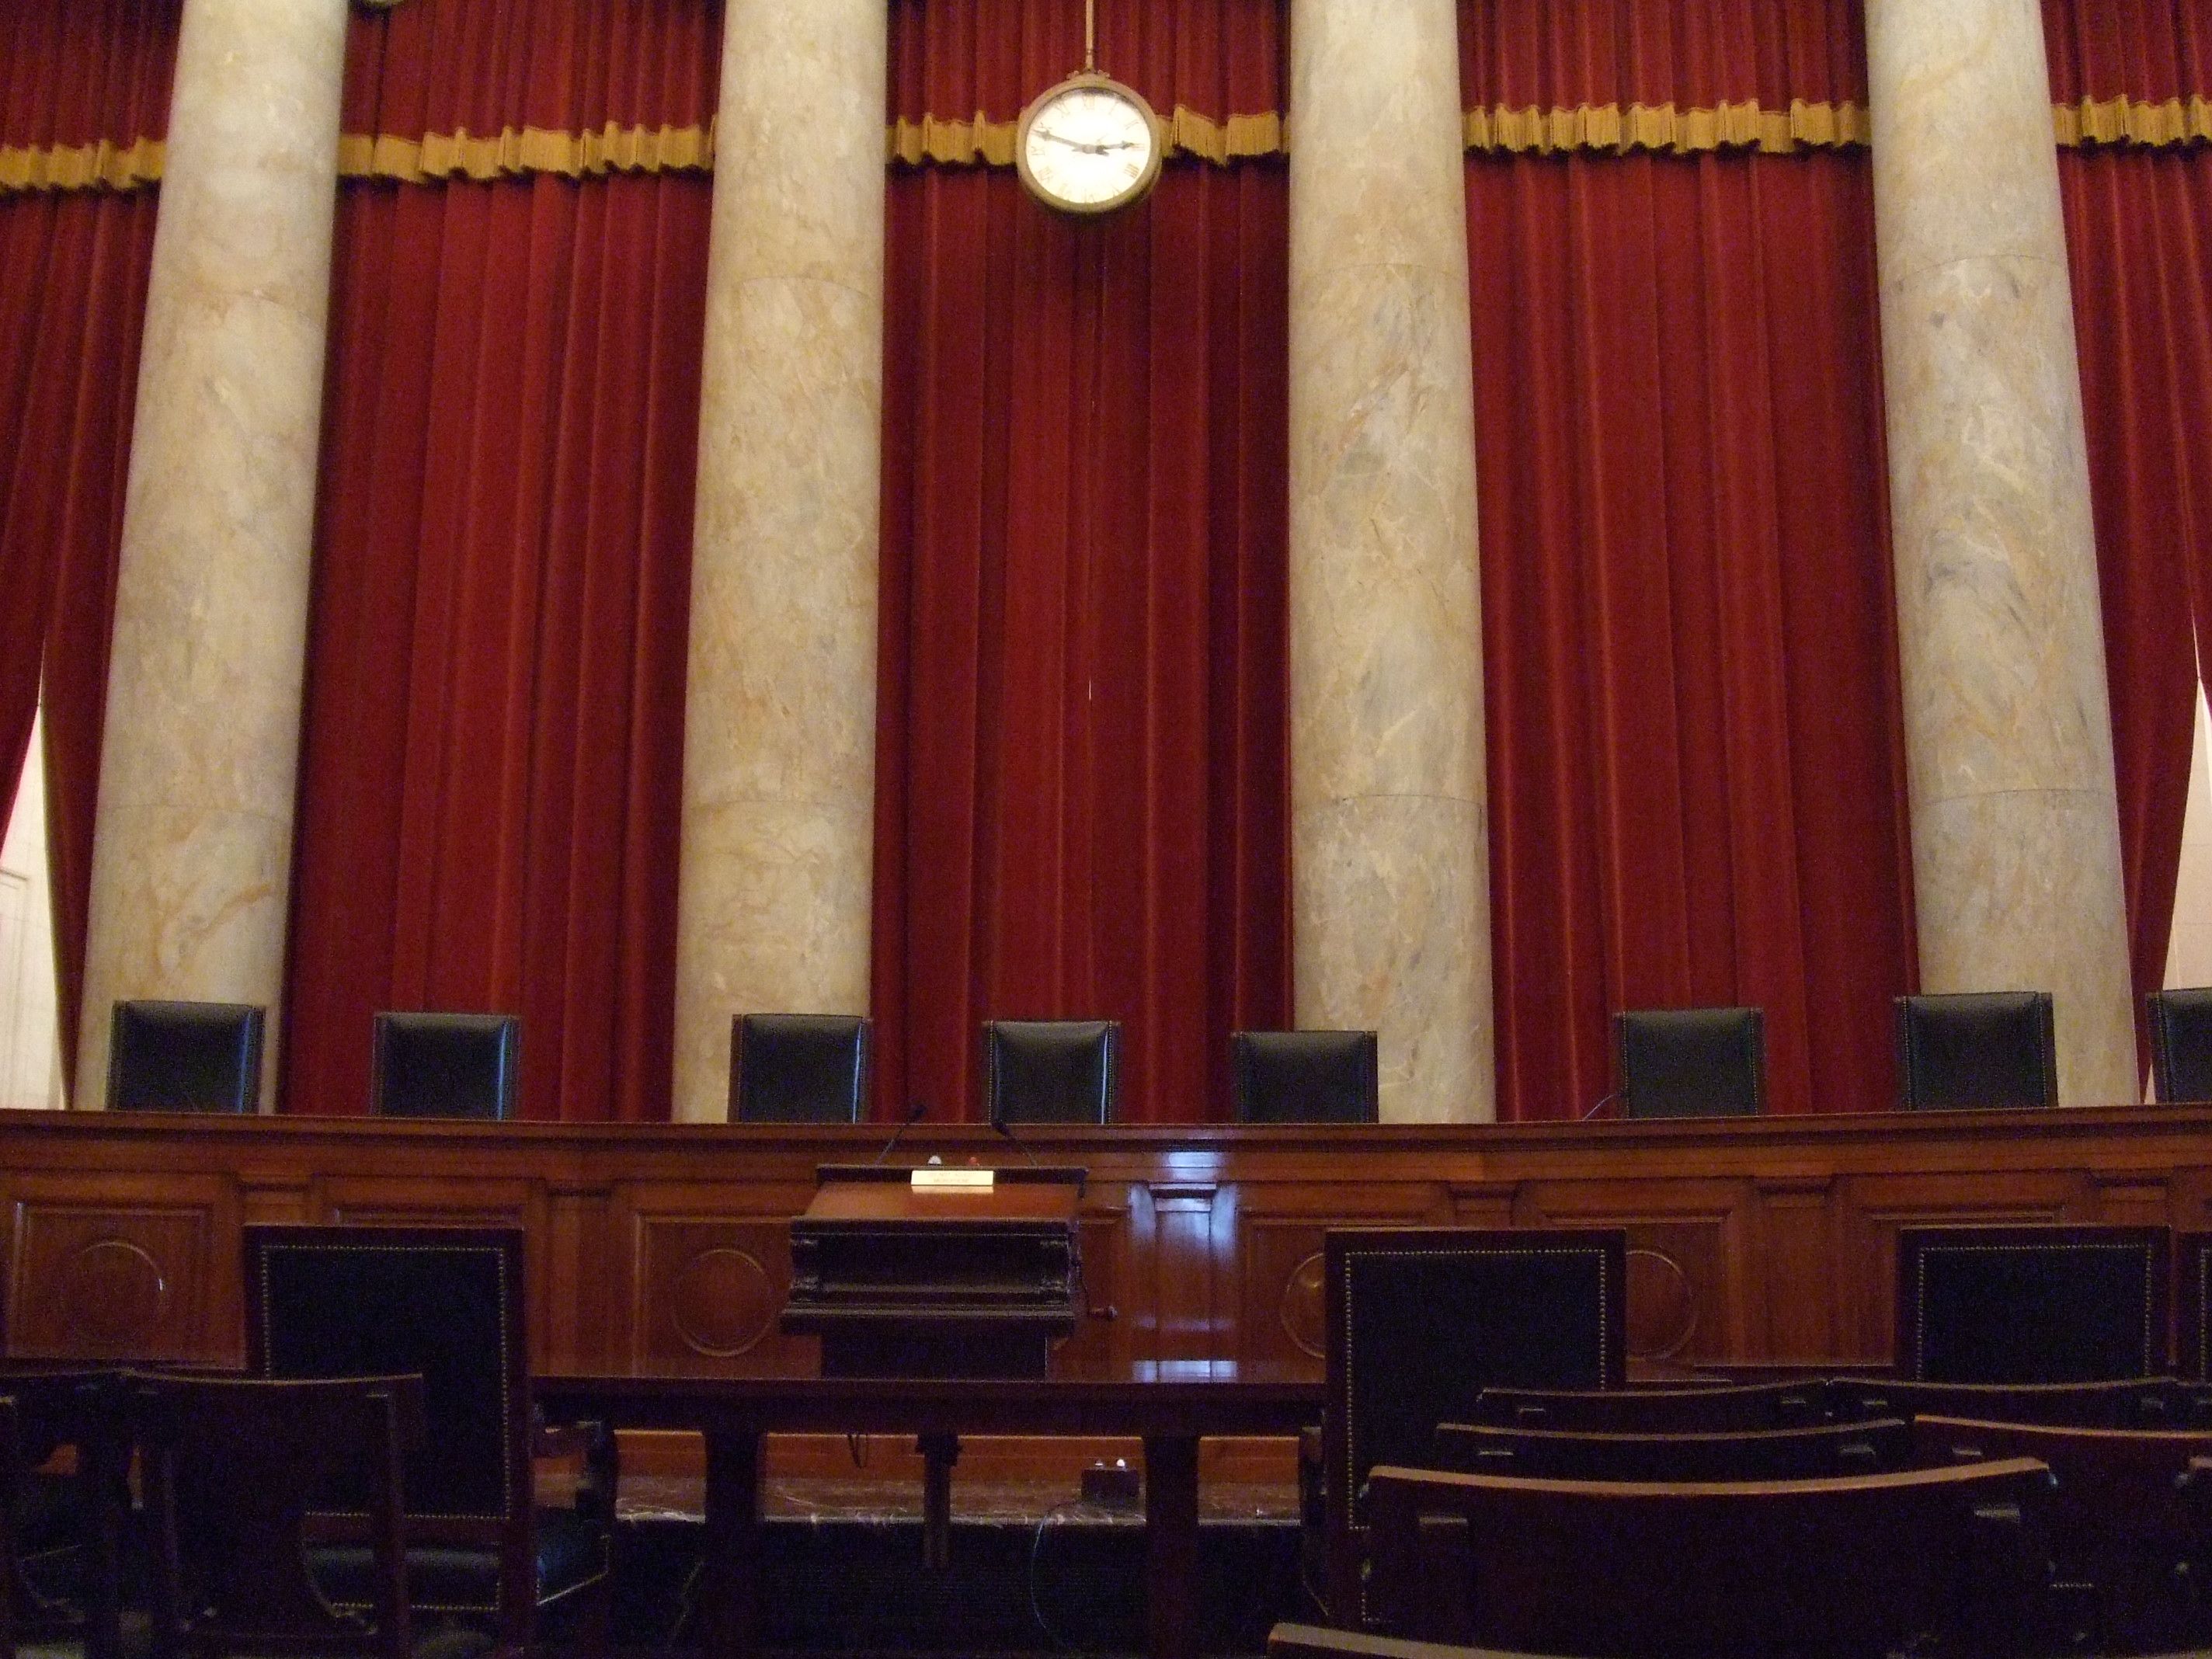 About the Supreme Court